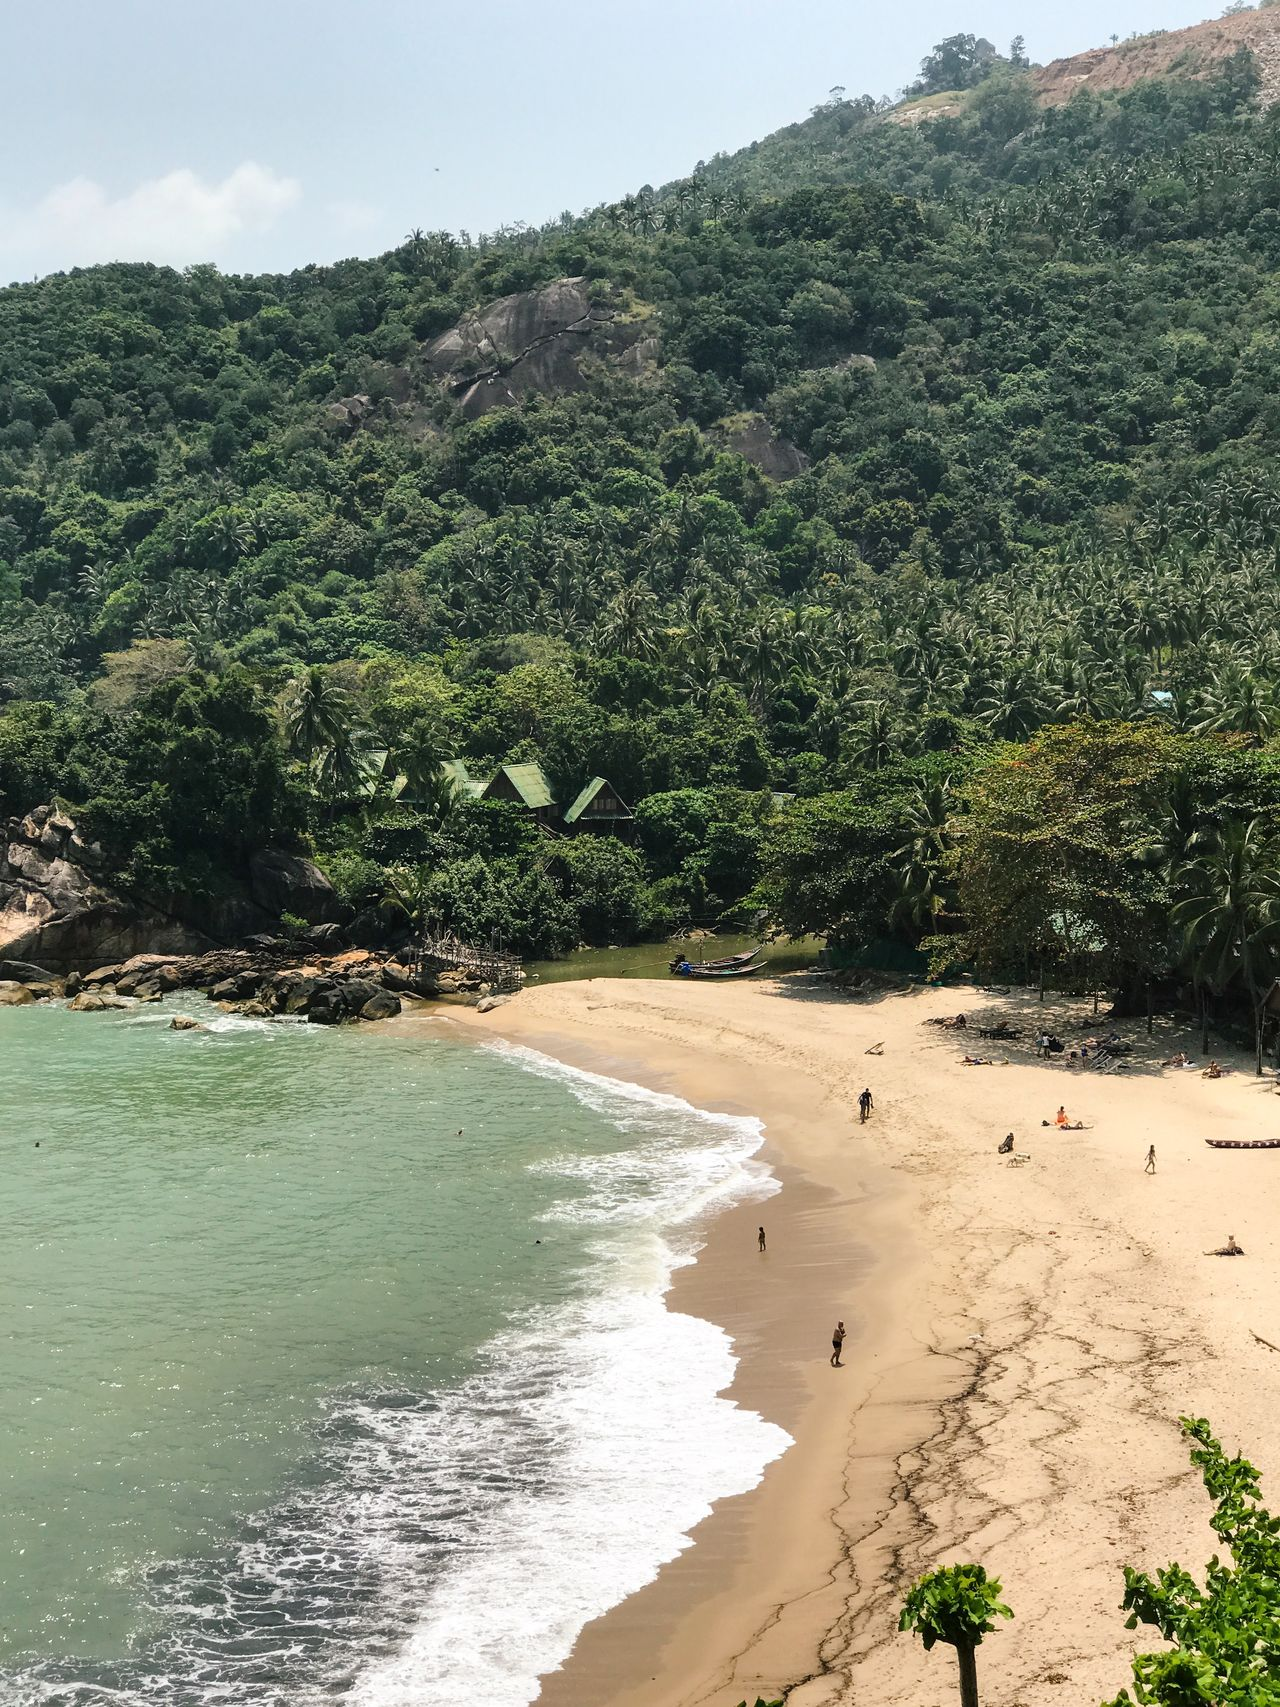 Beach Beauty In Nature Day Eco Tourism Growth Idyllic Scenery Ko Phangan Landscape Nature Outdoors Relaxing Sand Scenics Secluded Beach Sky Thailand Tourism Tranquil Scene Tranquility Travel Destinations Tree Tropical Climate Vacations View From Above Water